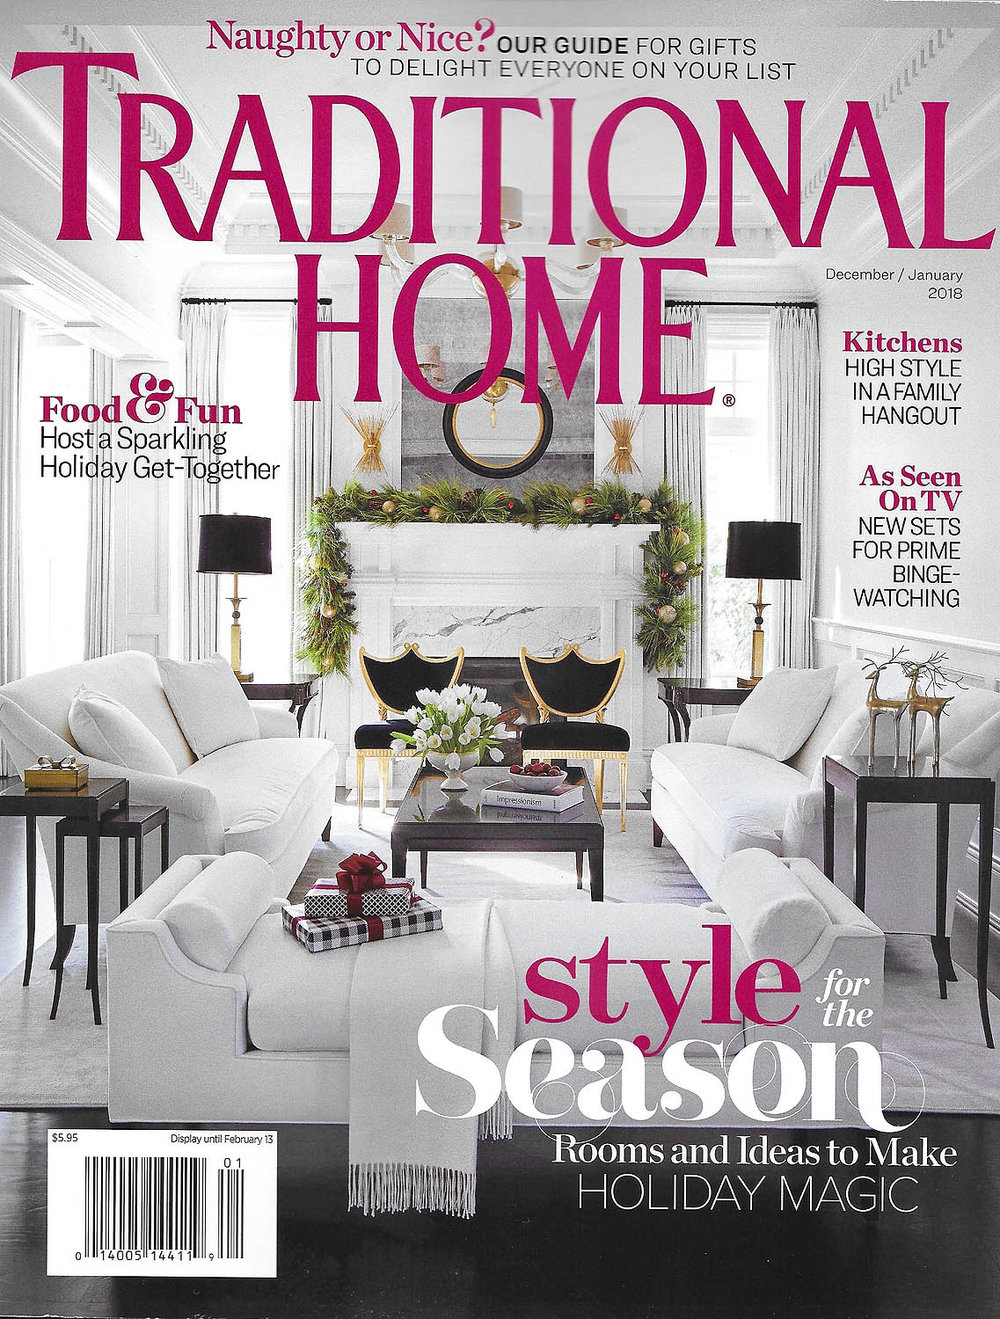 Traditional Home Dec 2018 Cover.jpg